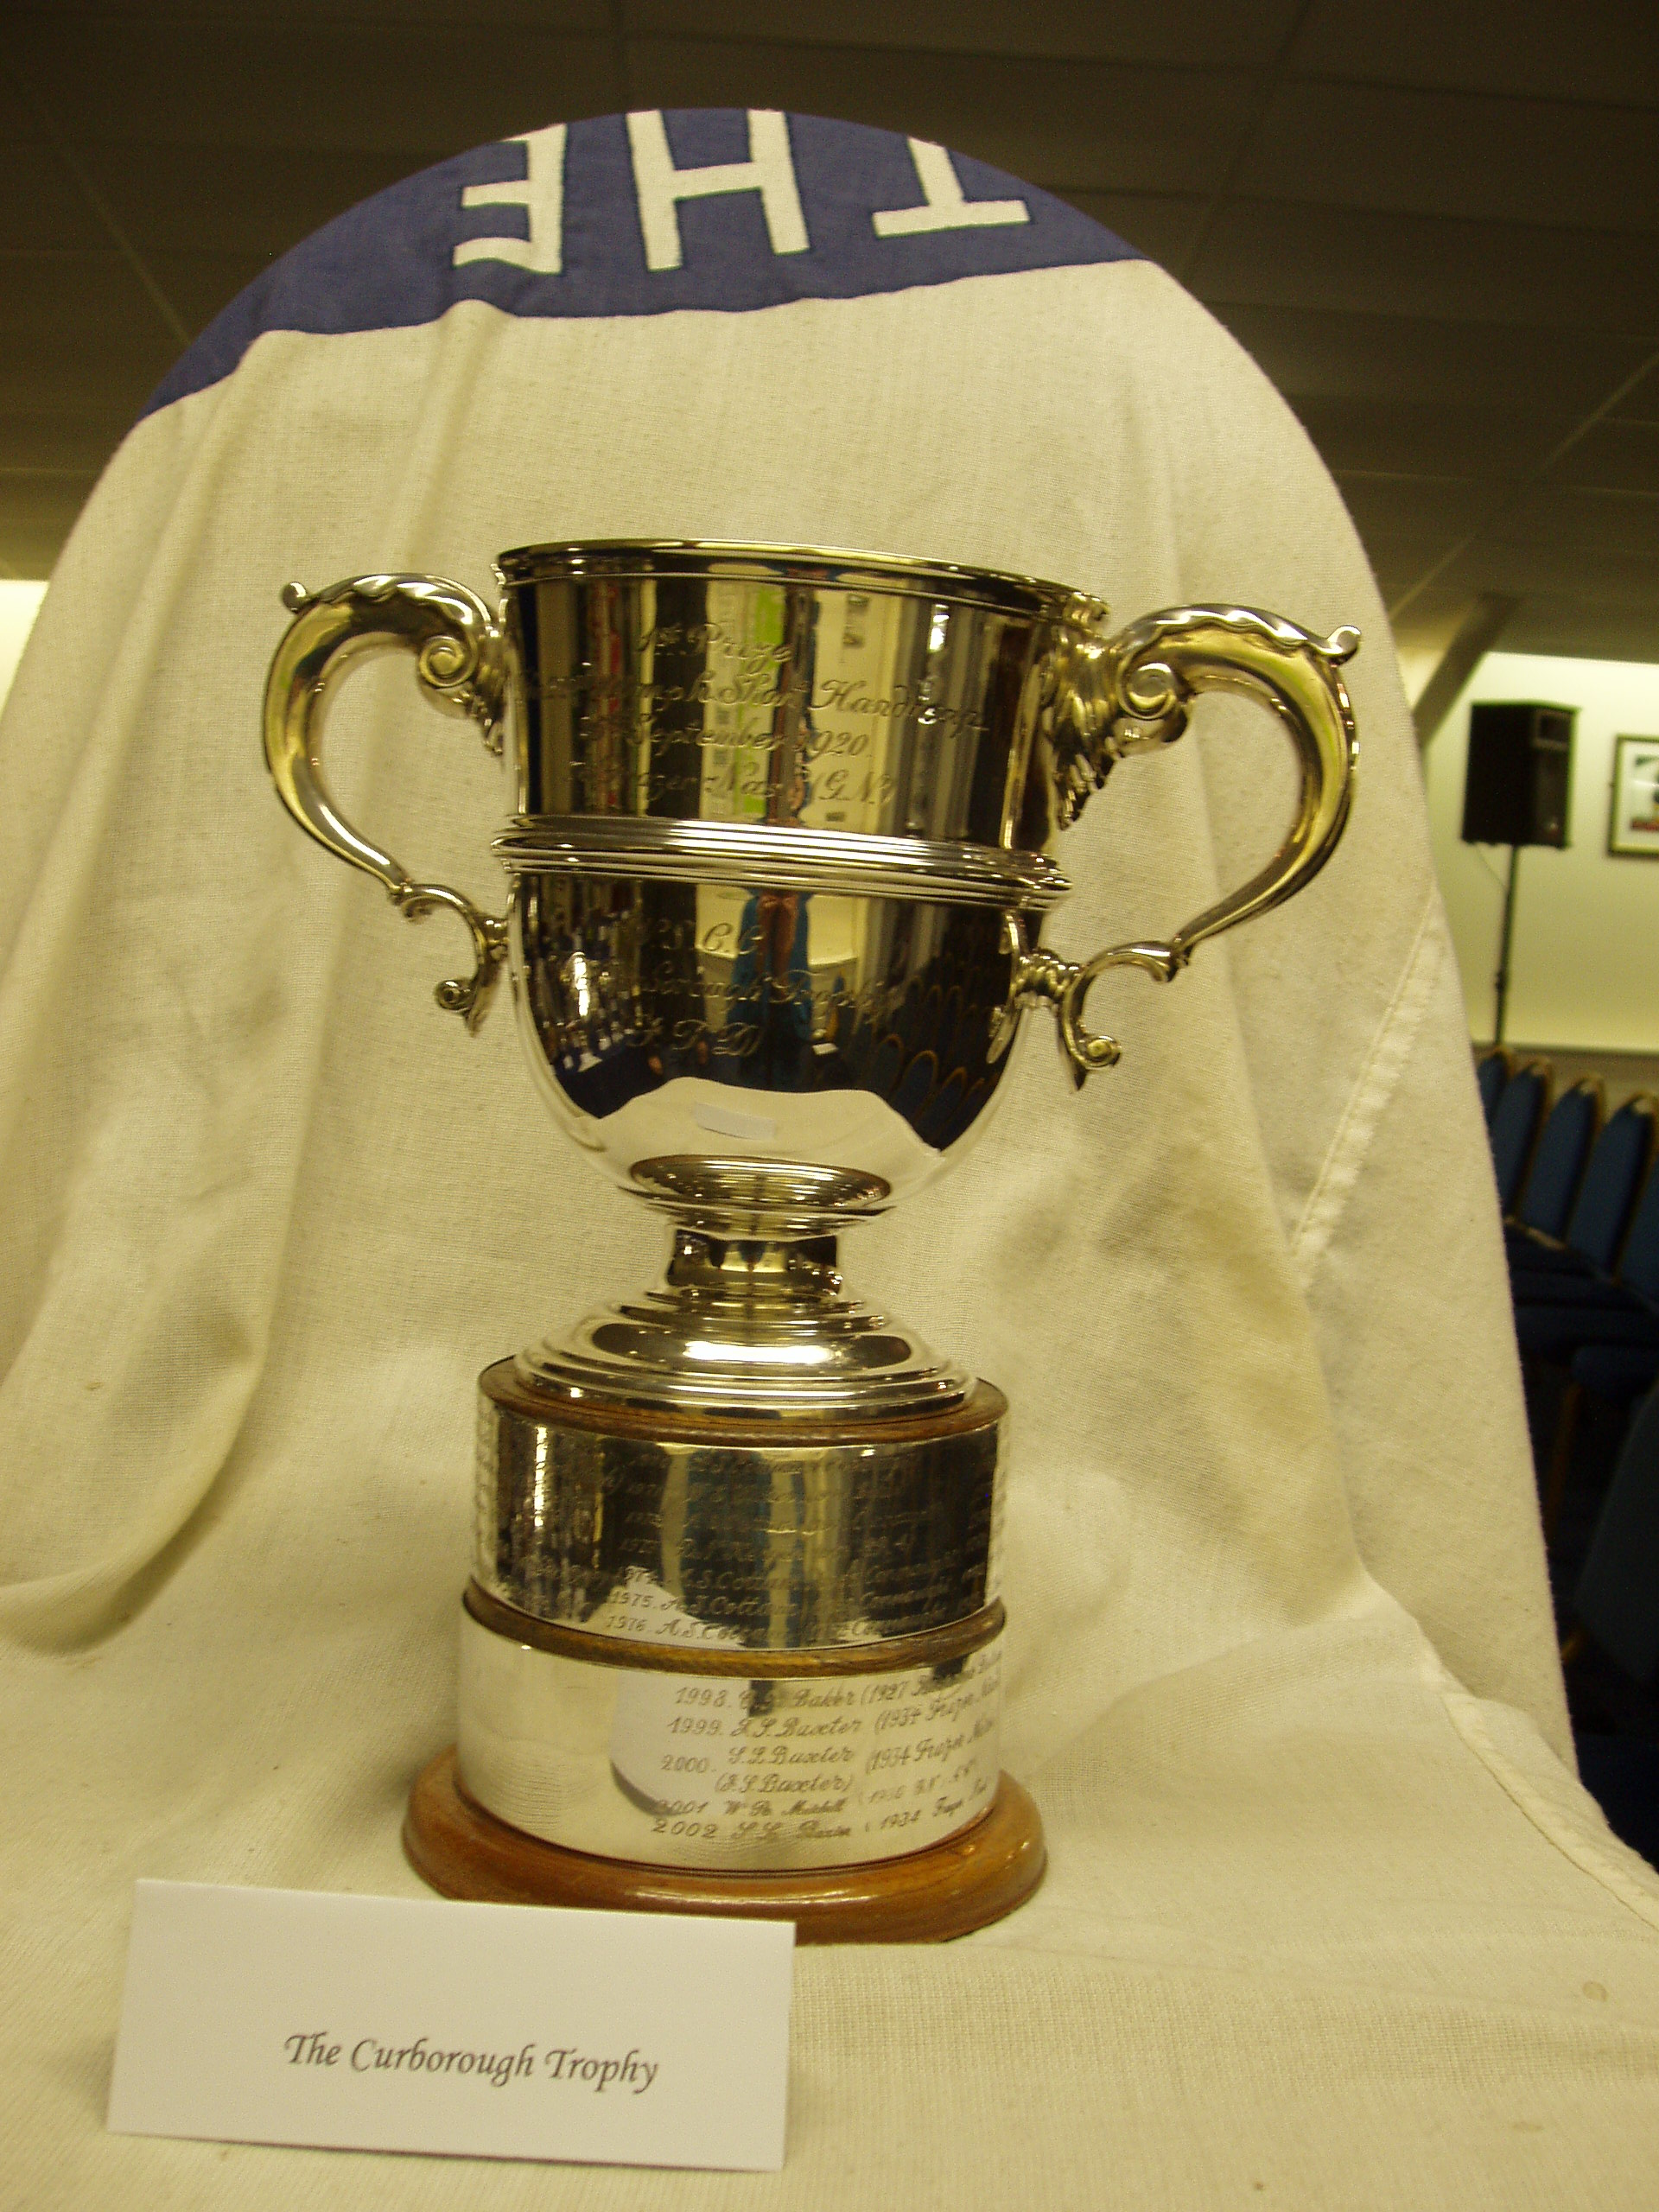 CURBOROUGH TROPHY cover